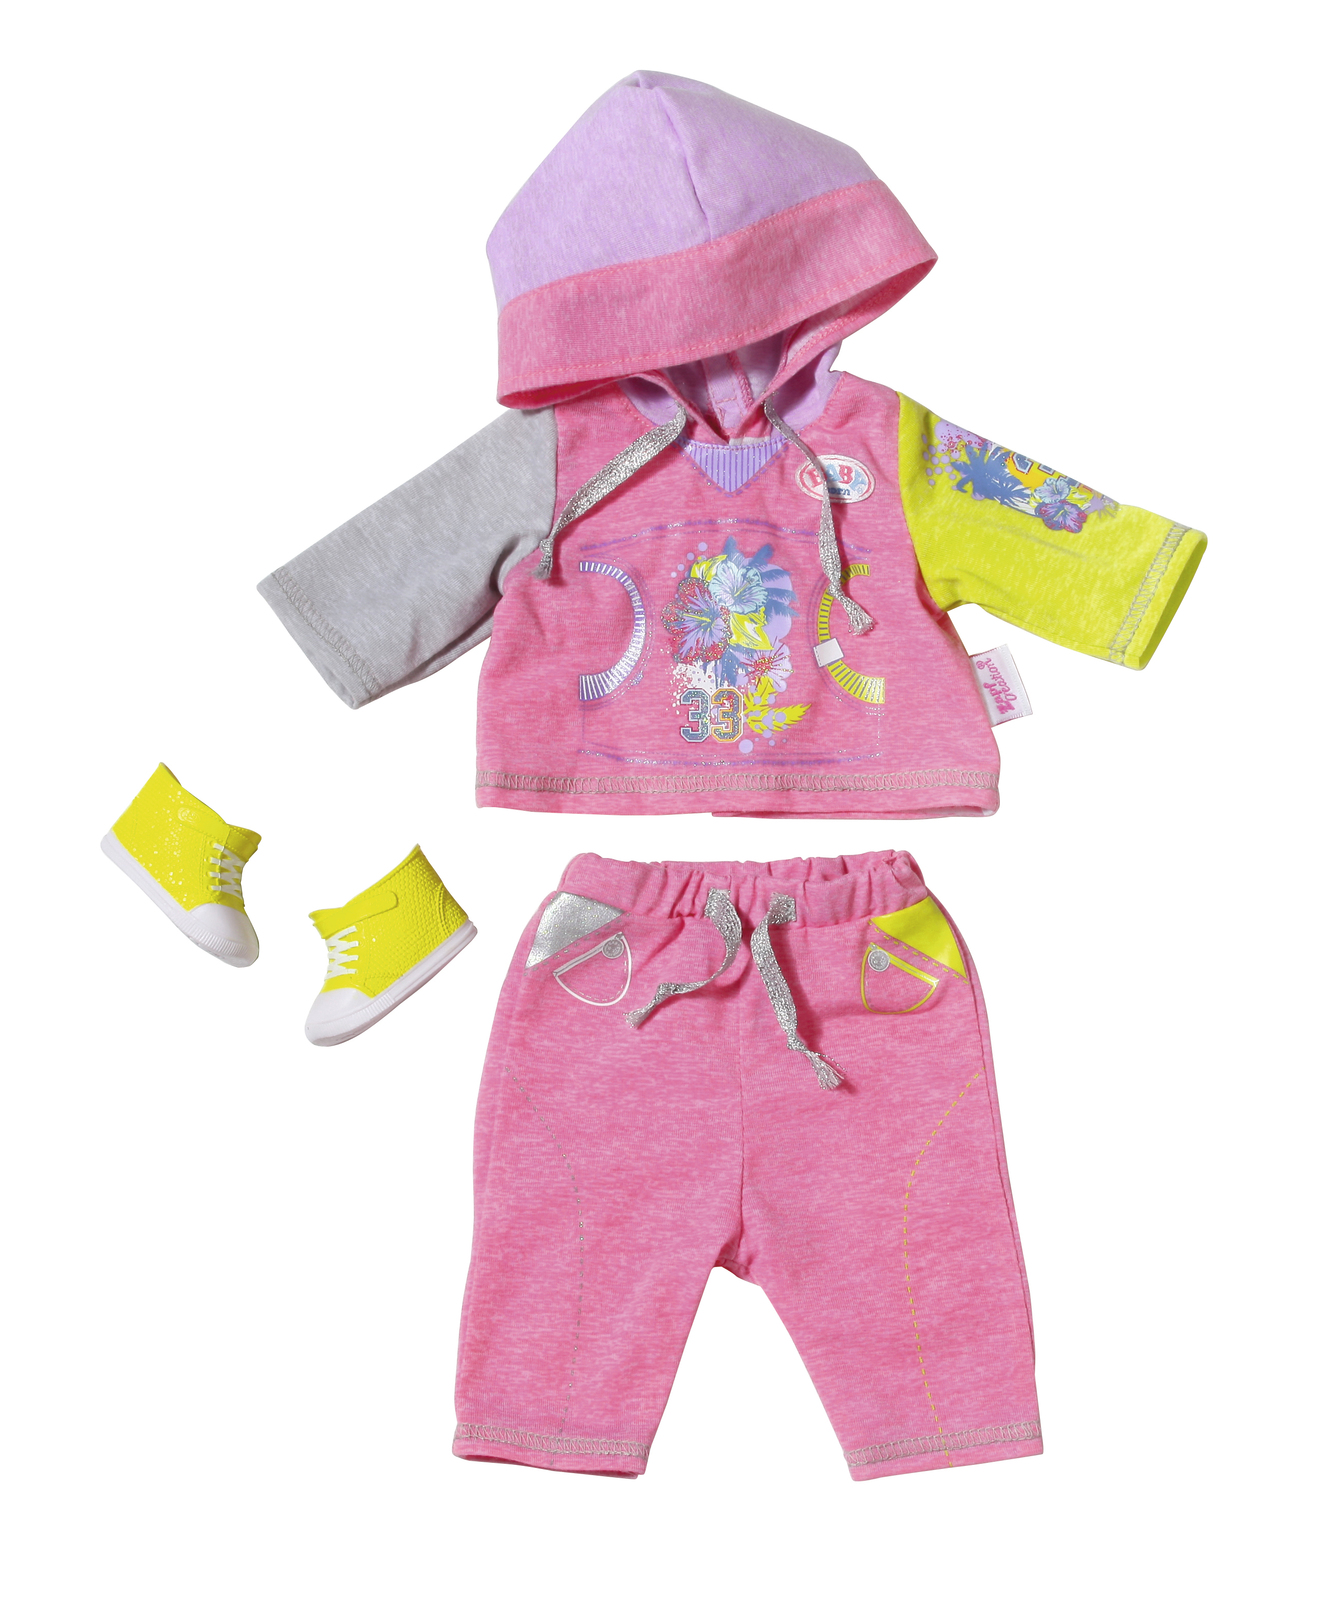 Baby Born - Deluxe Jogging Set - Pink image